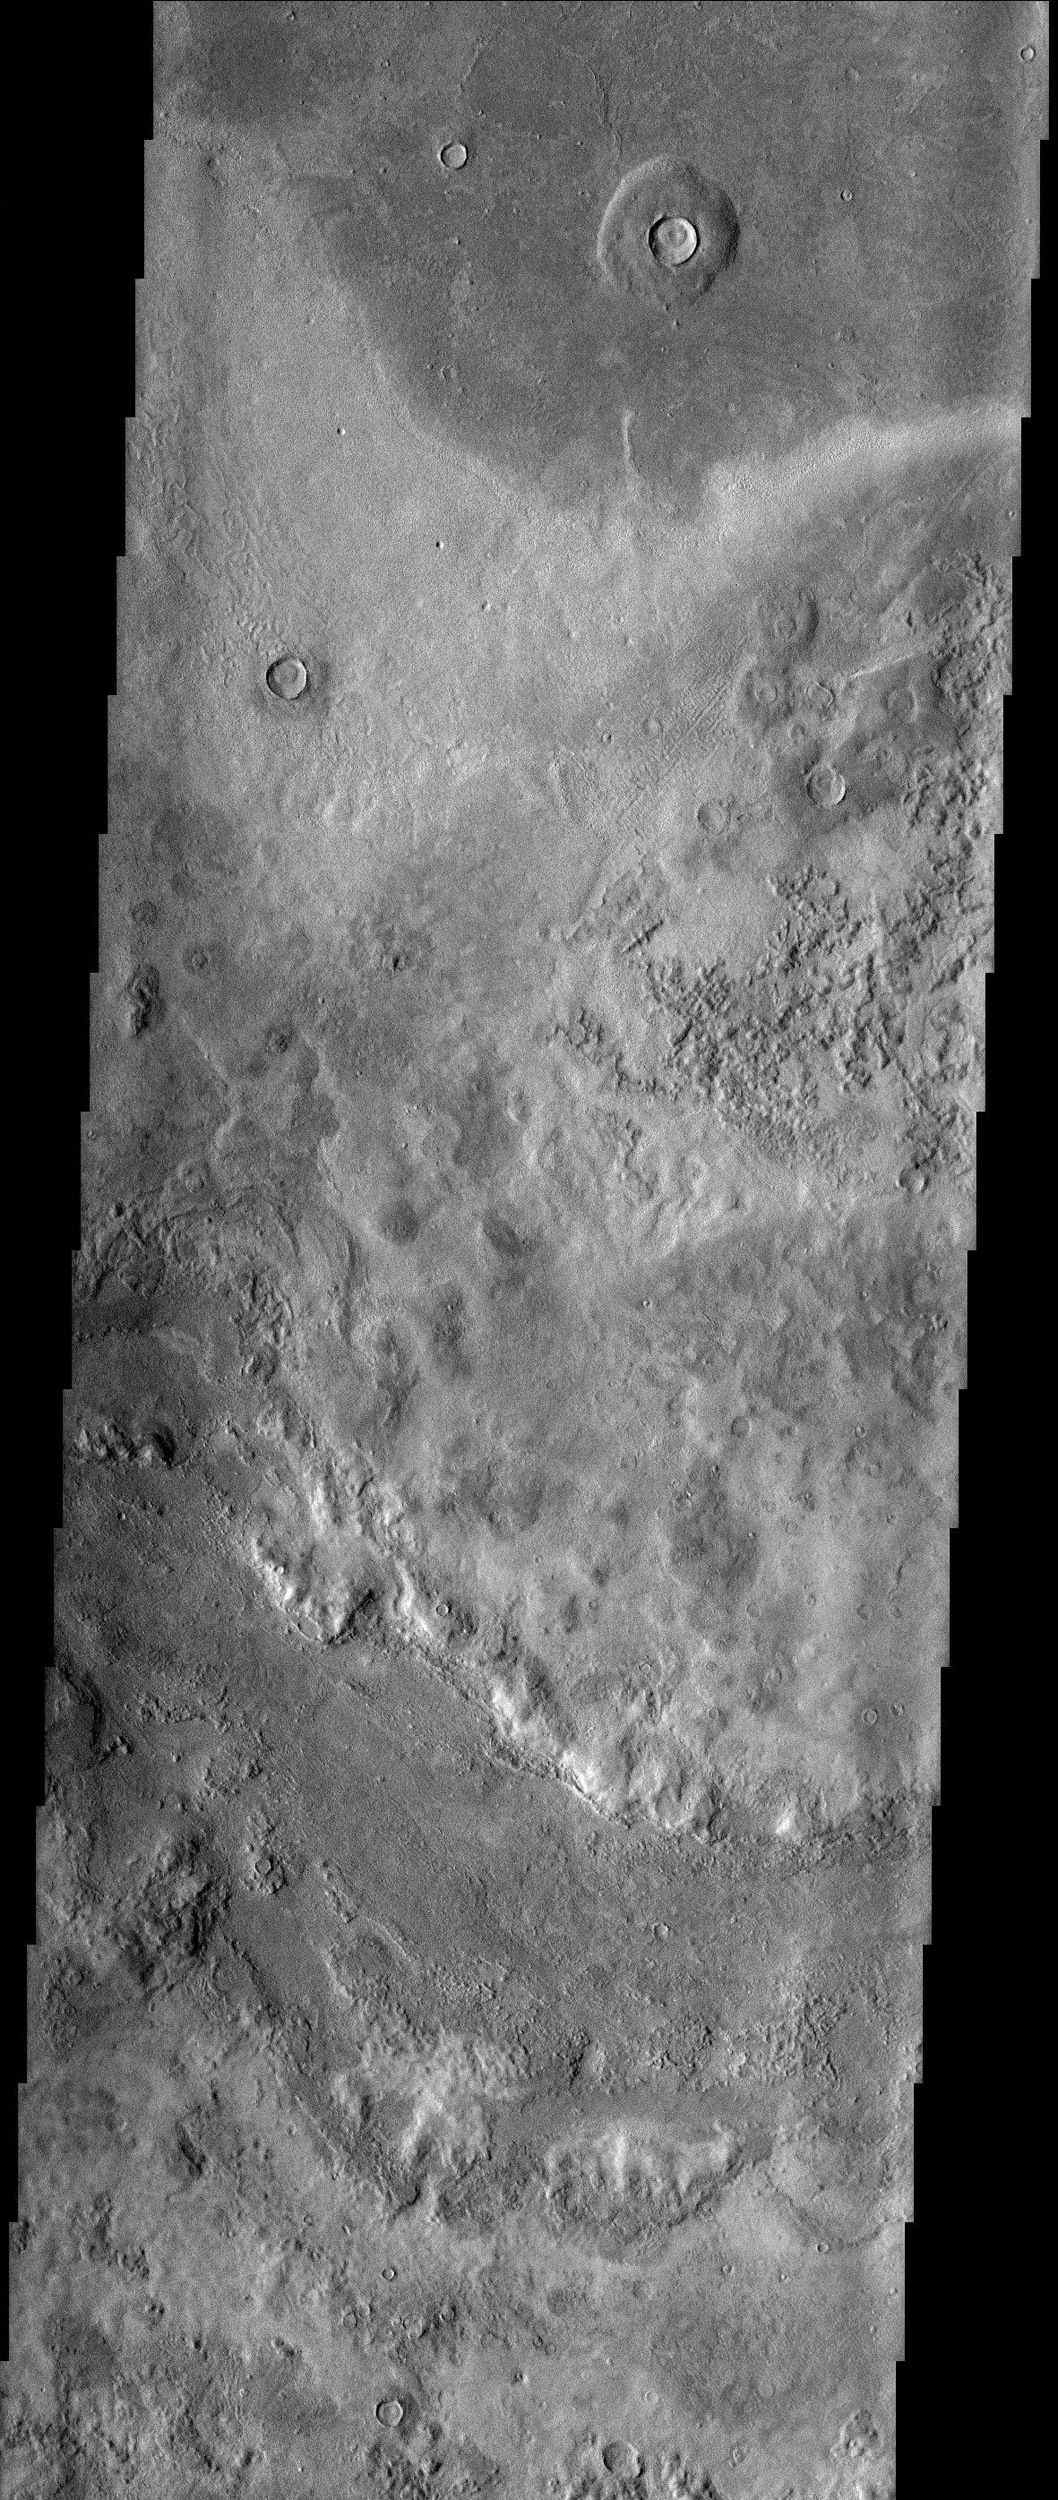 In this image from NASA's Mars Odyssey spacecraft, bizarre textures cover the surface of eastern Utopia Planitia, where there is a high probability that ground ice has played a role in the formation of this unusual landscape.